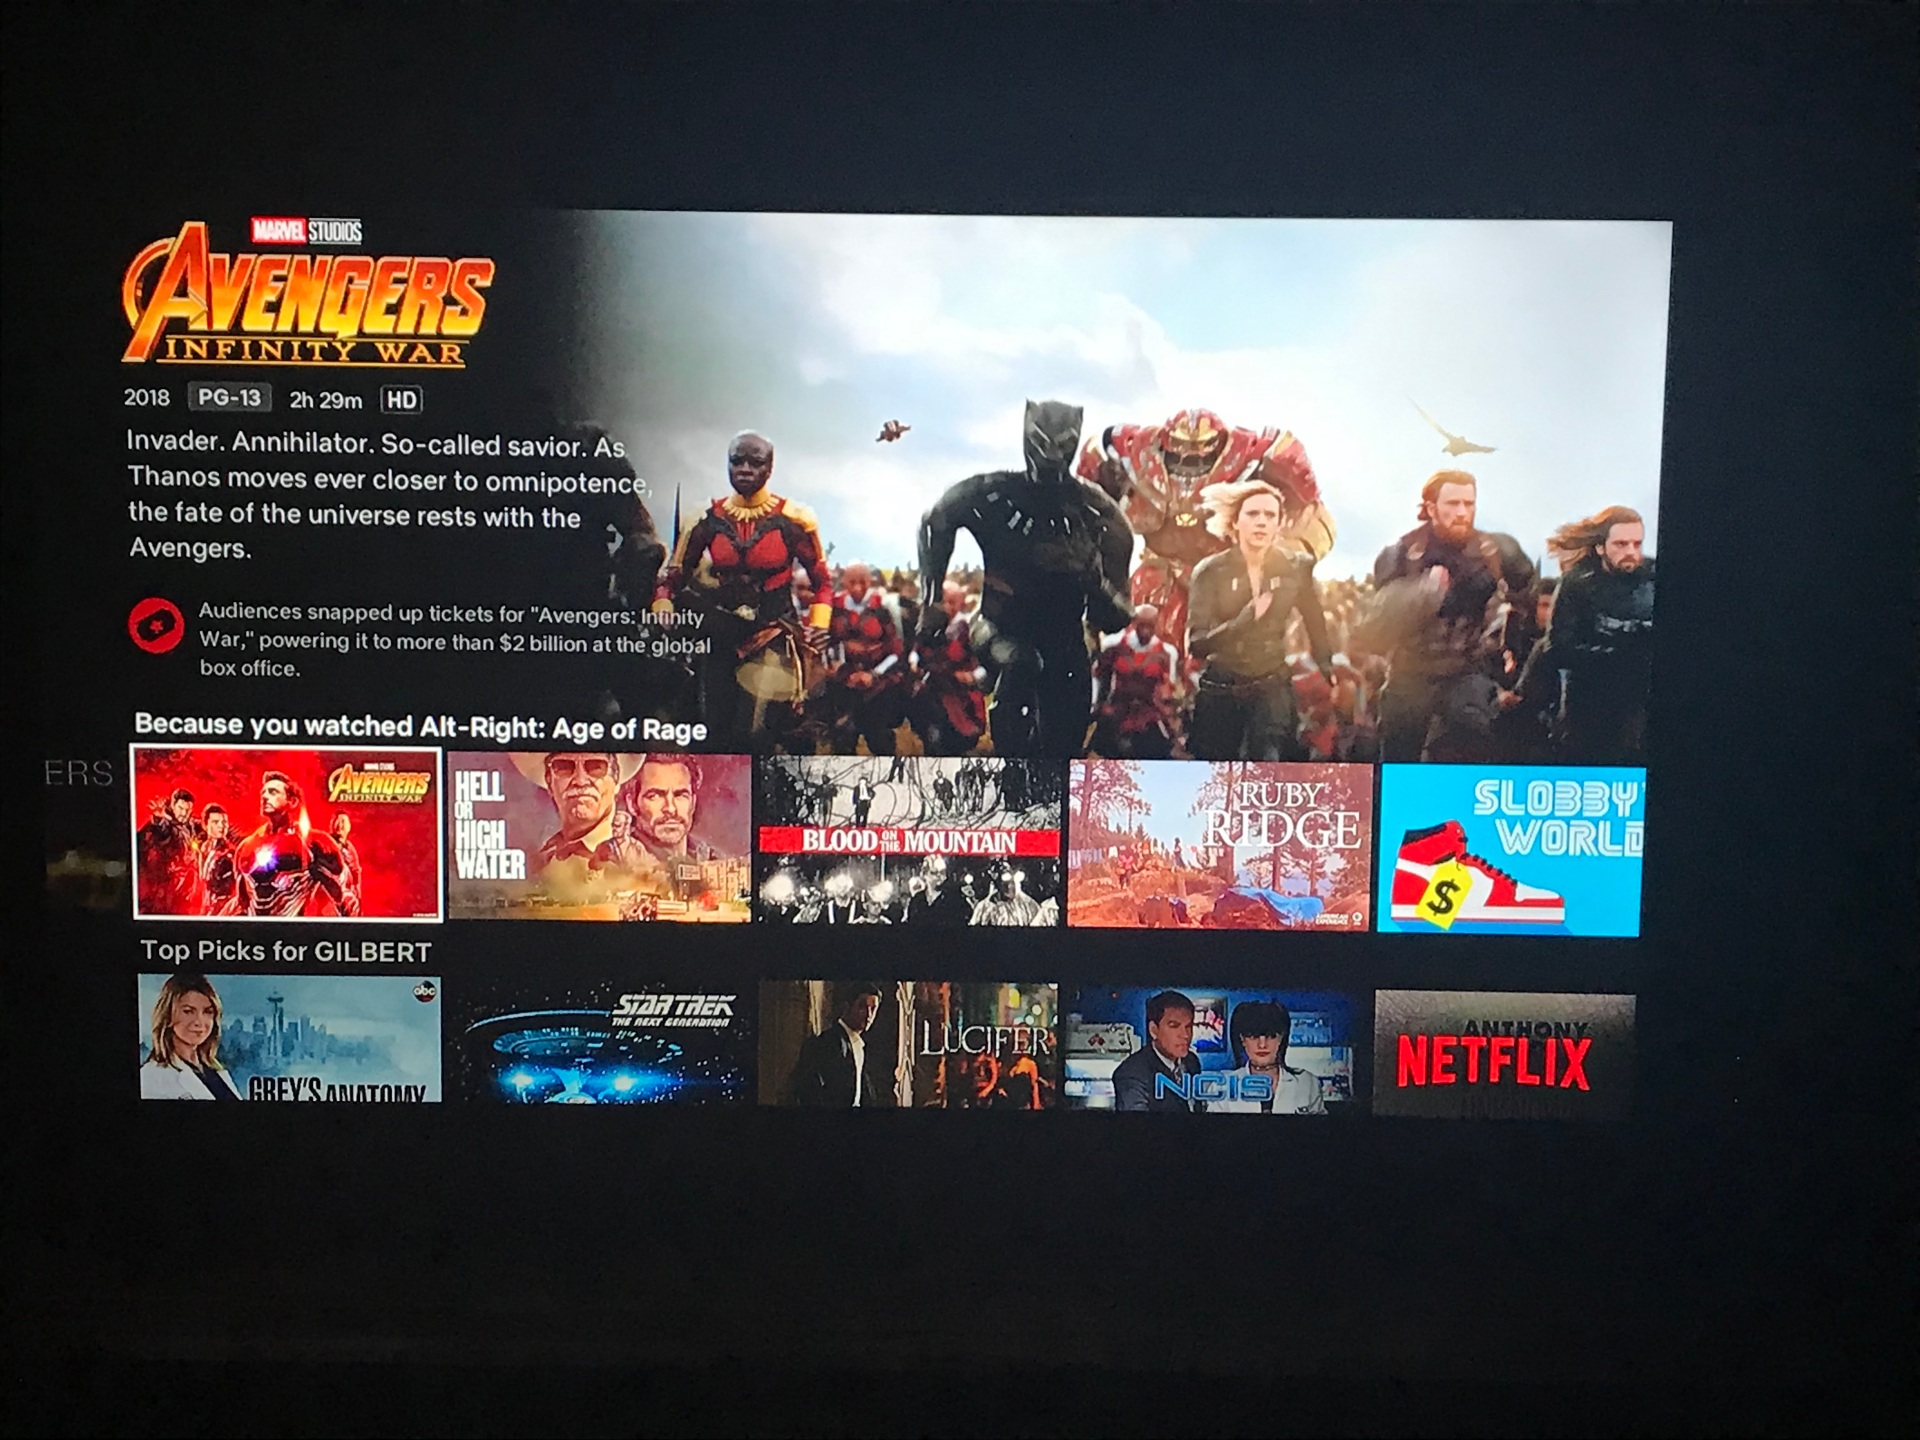 The top banner is Avengers: Infinity War with the lower banner with recommended movies